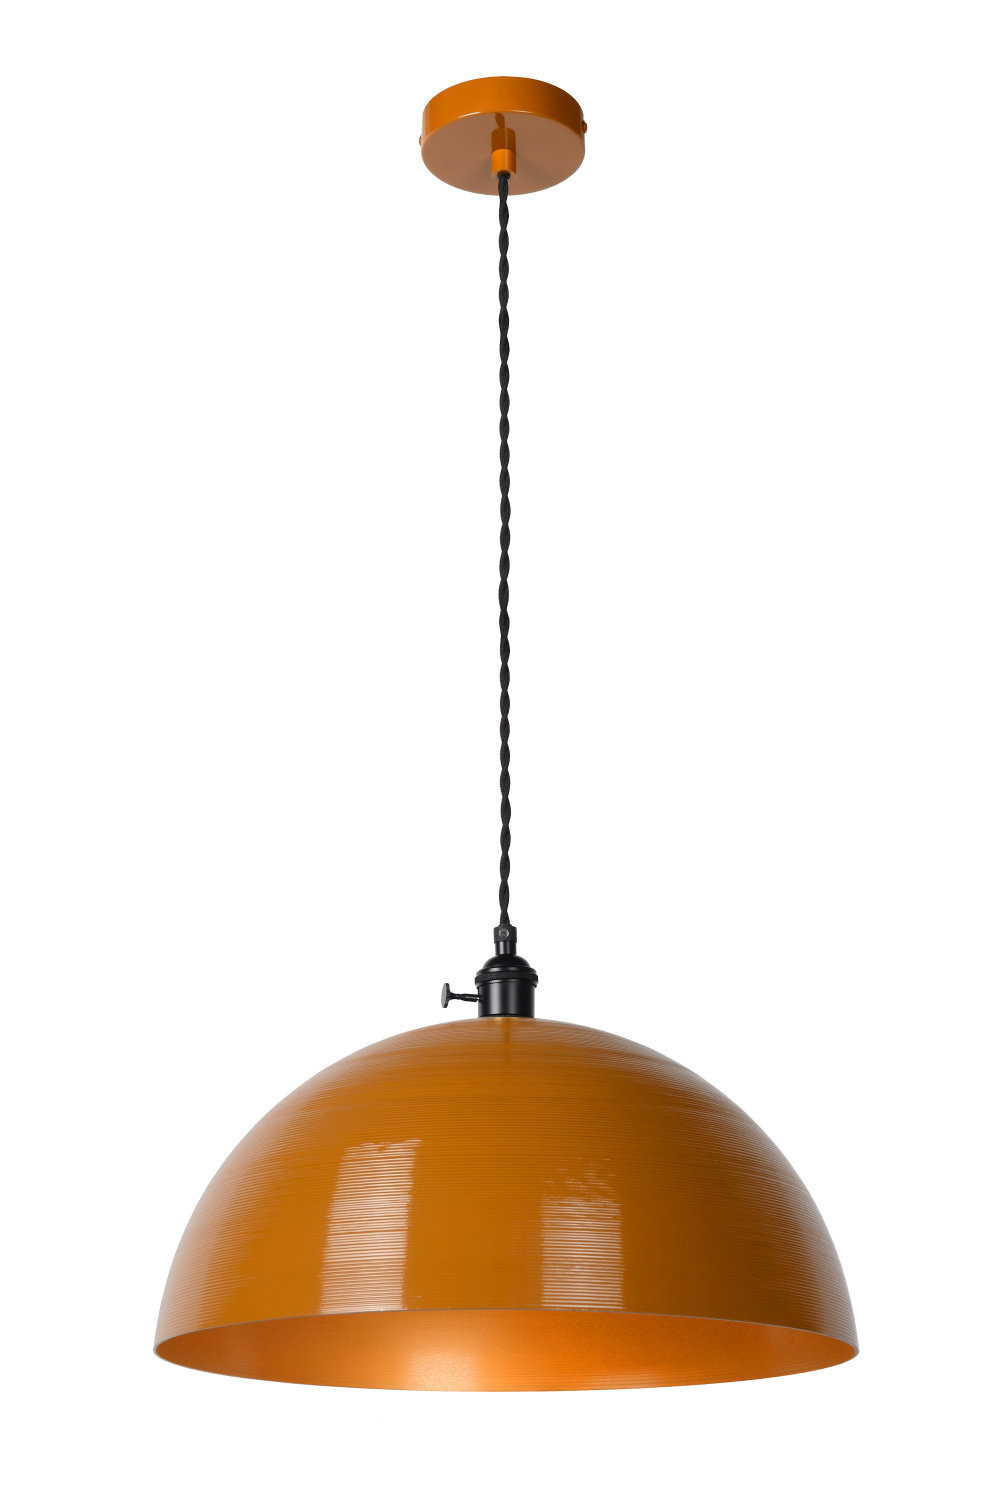 Lucide MARNE Hanglamp-Okerge.-Ø40-1xE27-60W-IP21-Staal